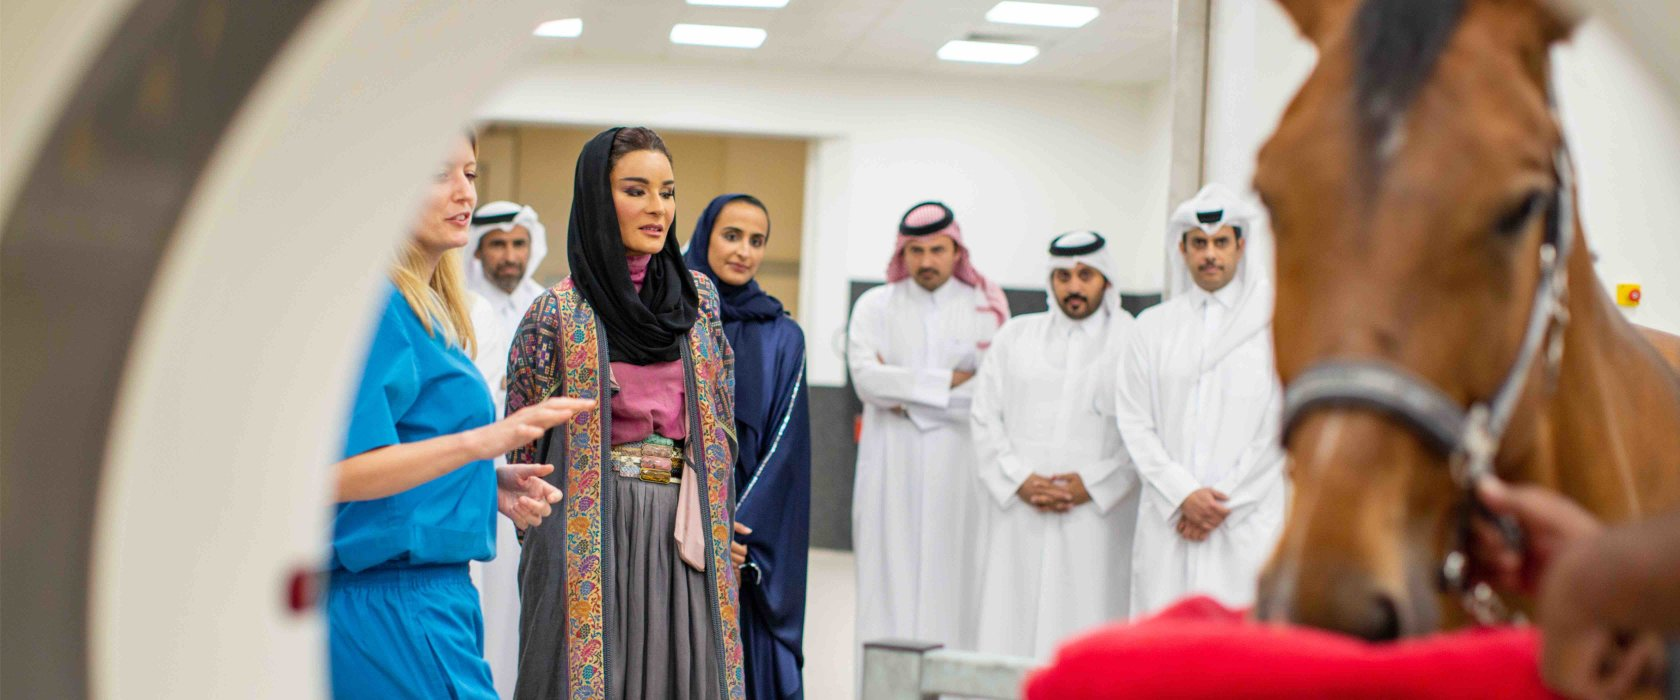 Her Highness Sheikha Moza bint Nasser opens QF's Equine Veterinary Medical Center